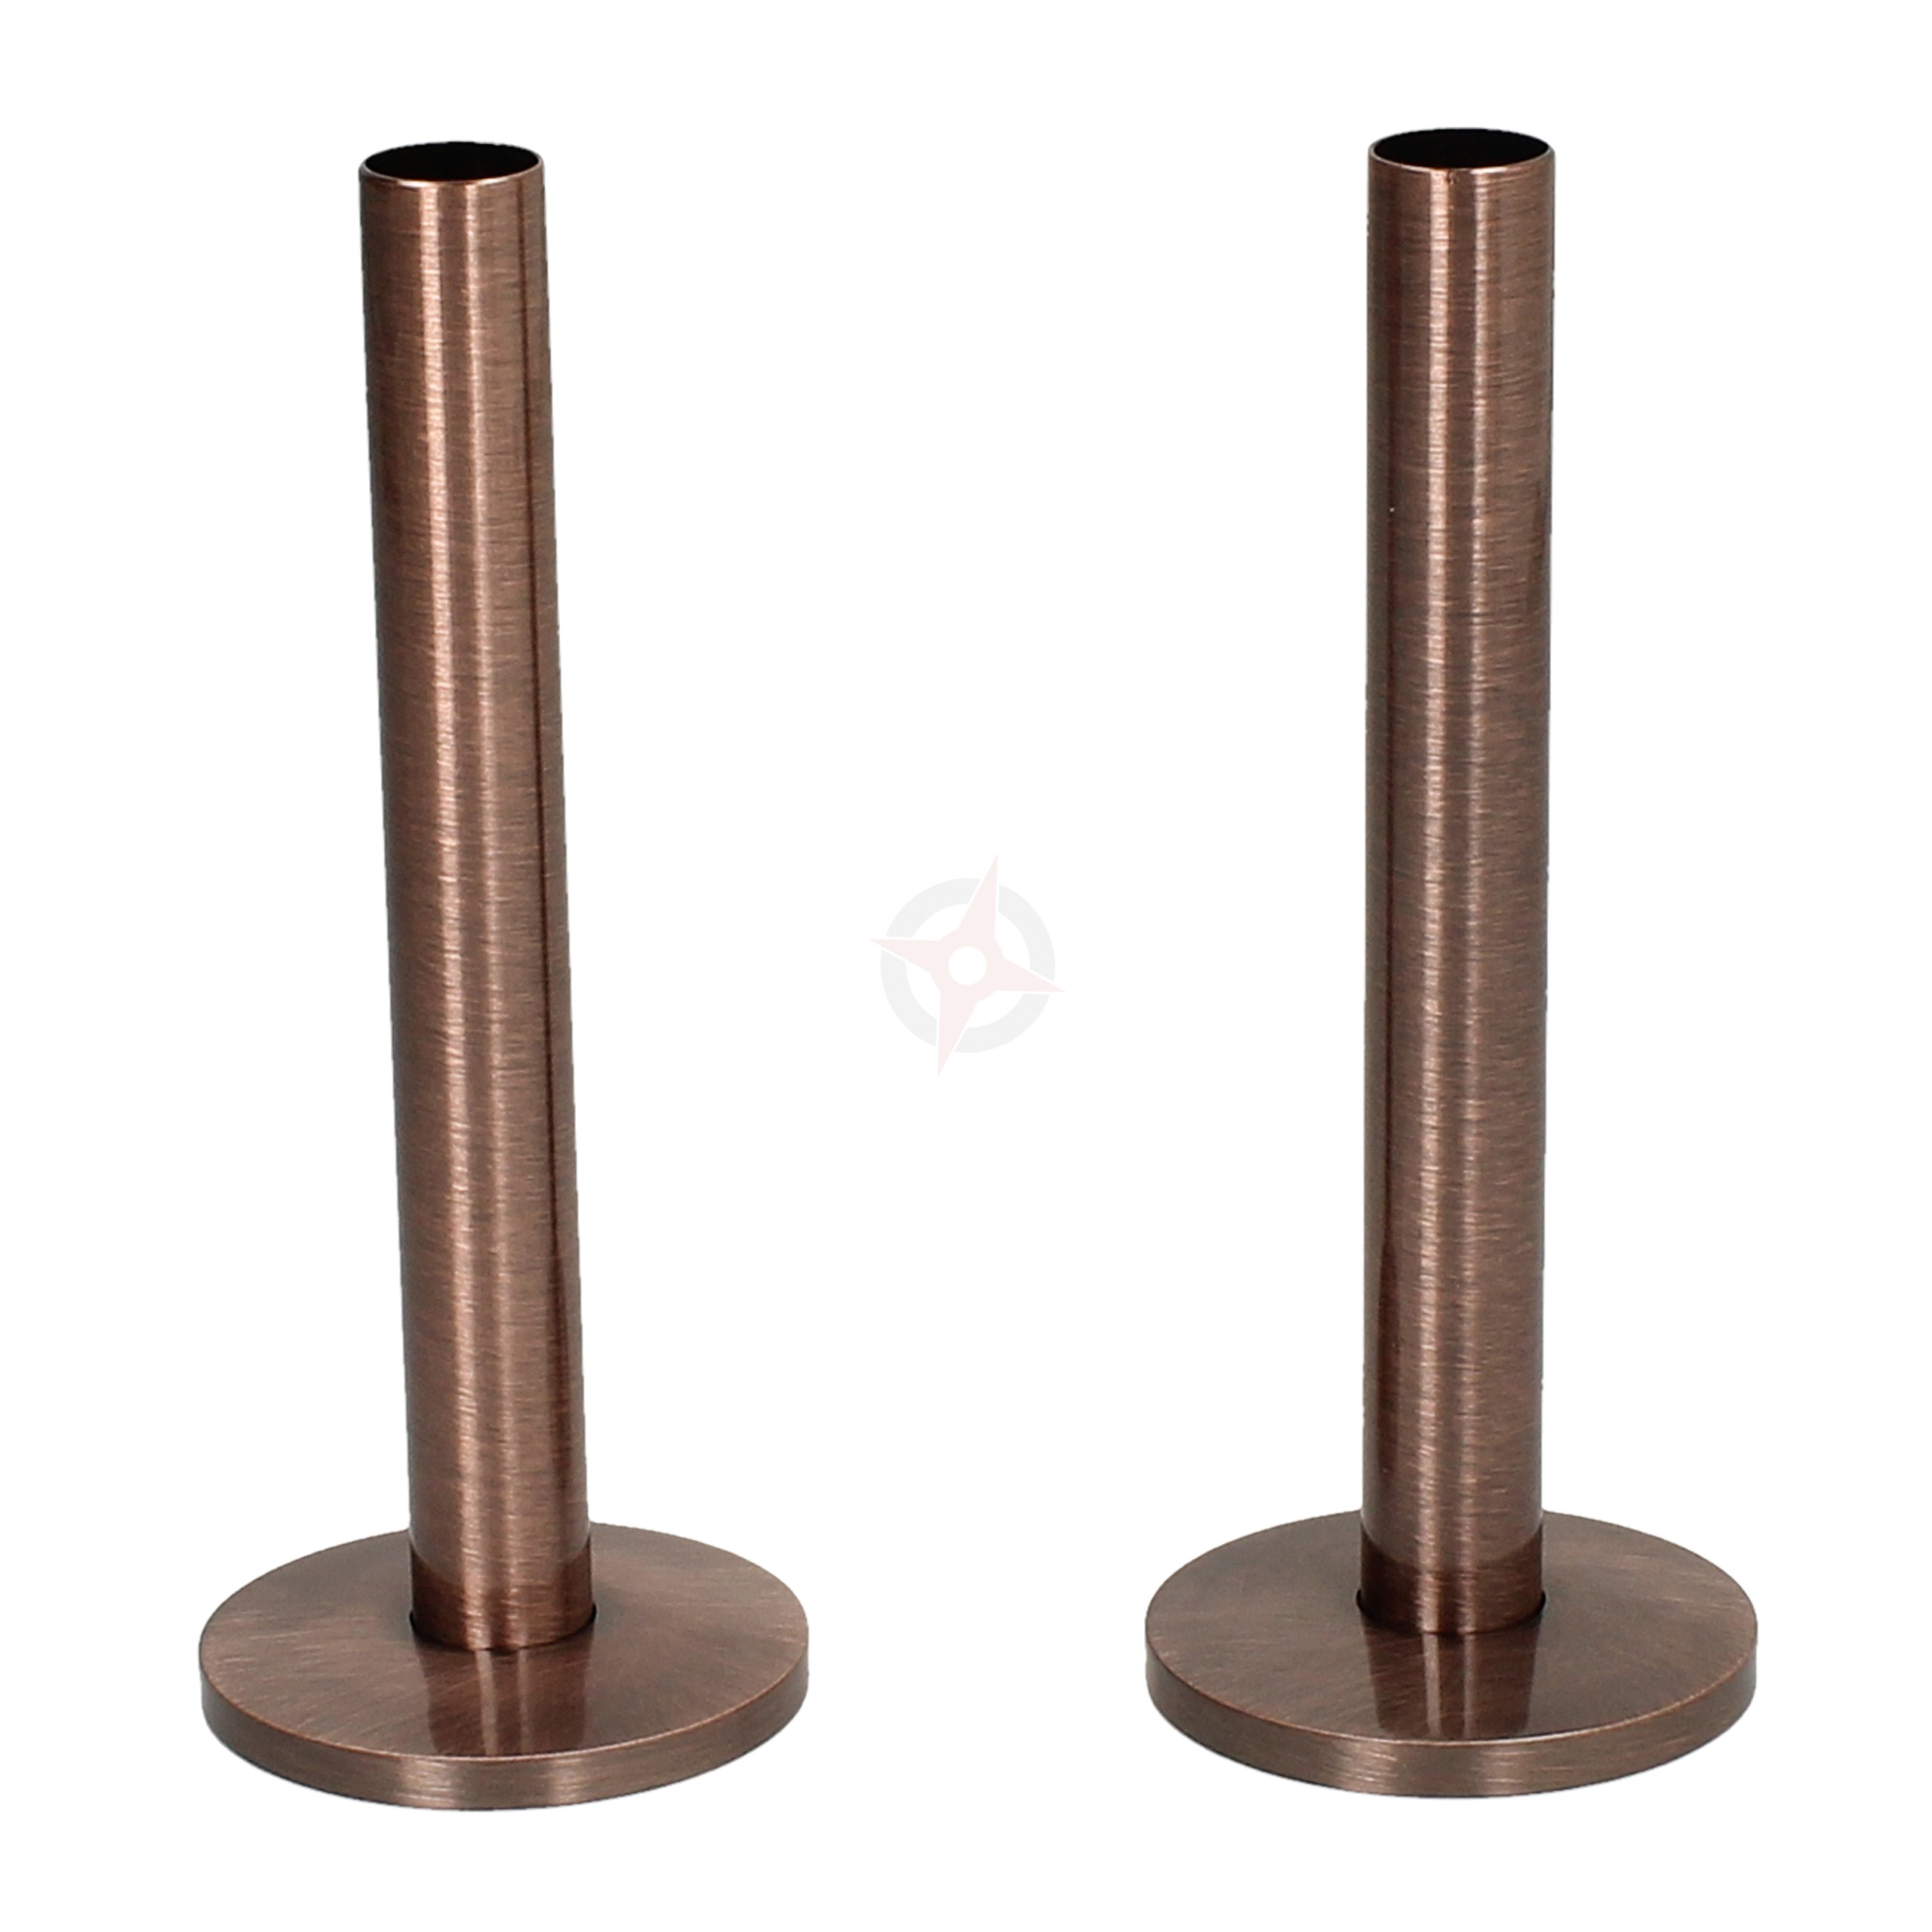 Antique Copper 15mm x 130mm Pipe Tails and Decoration Floor Plates (Pair)